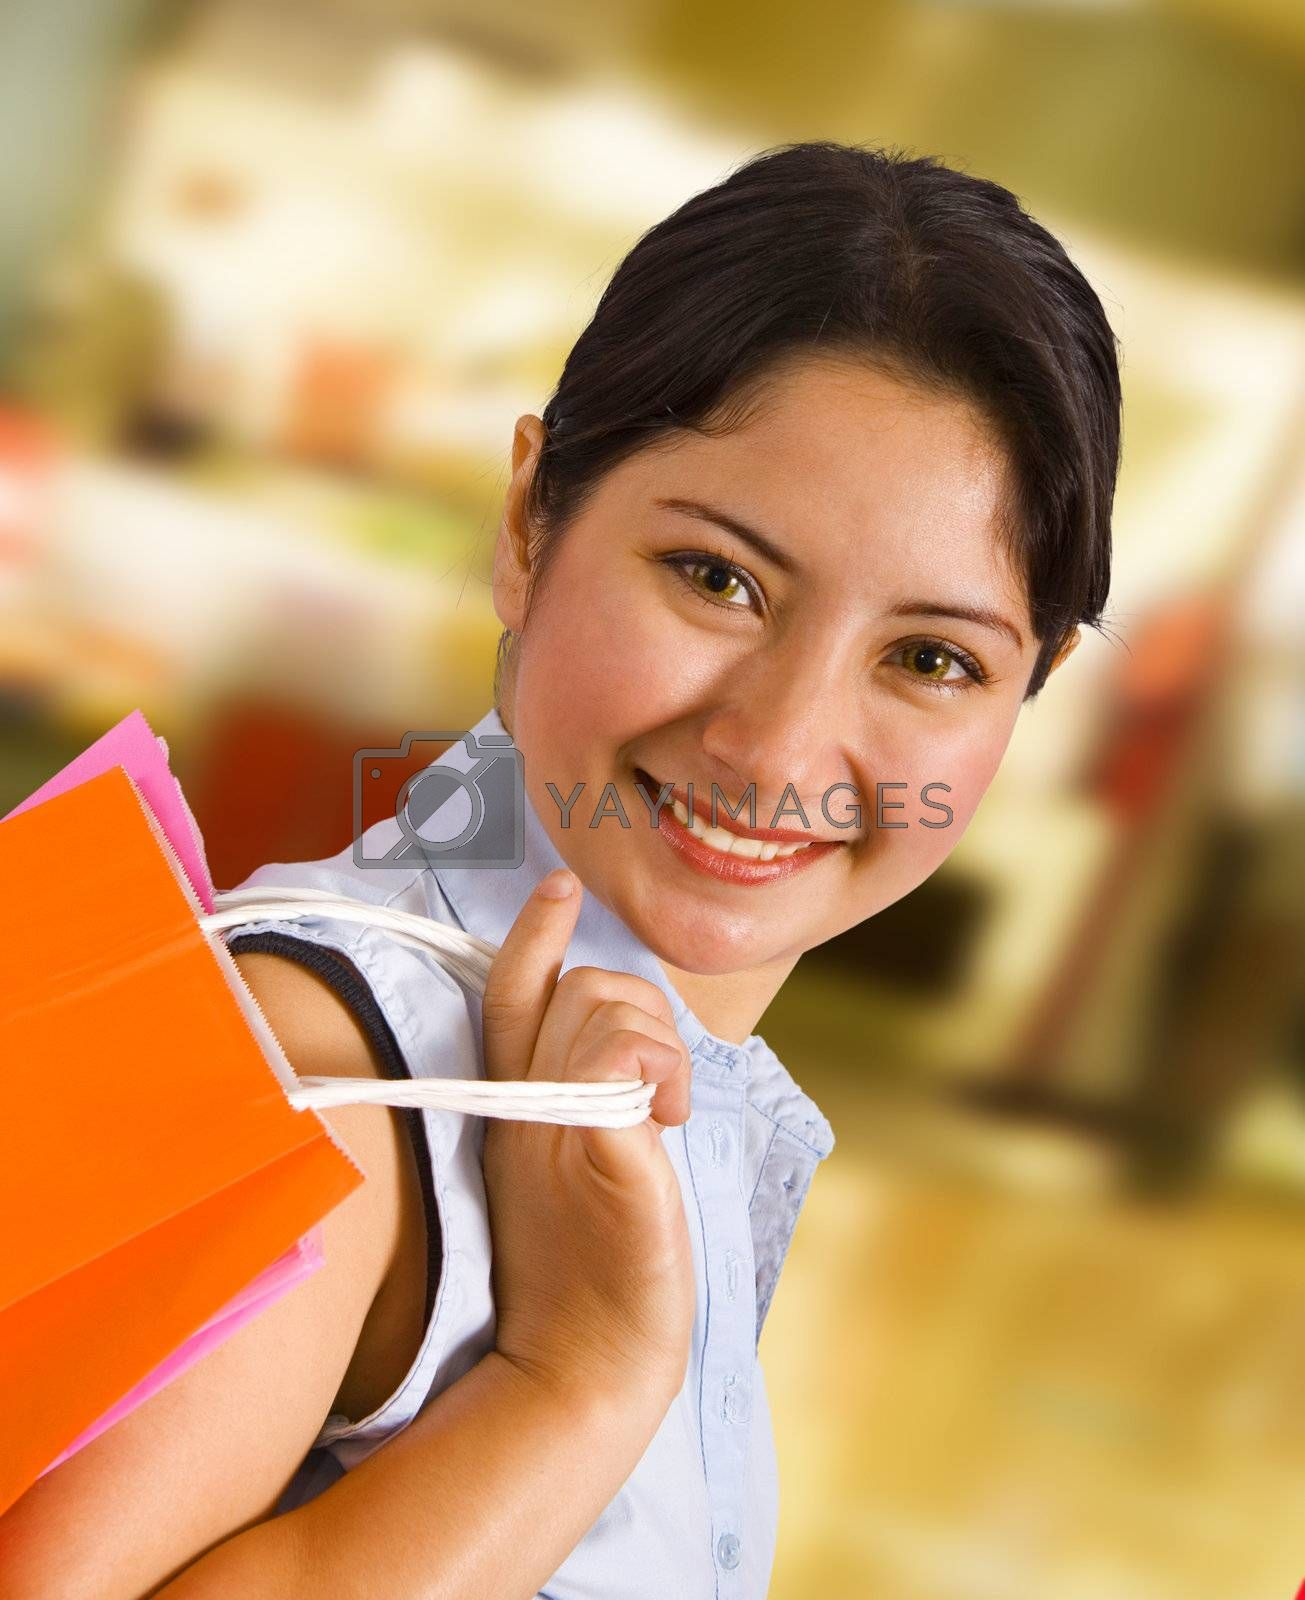 Woman In A Shopping Mall Carrying A Shopping Bag